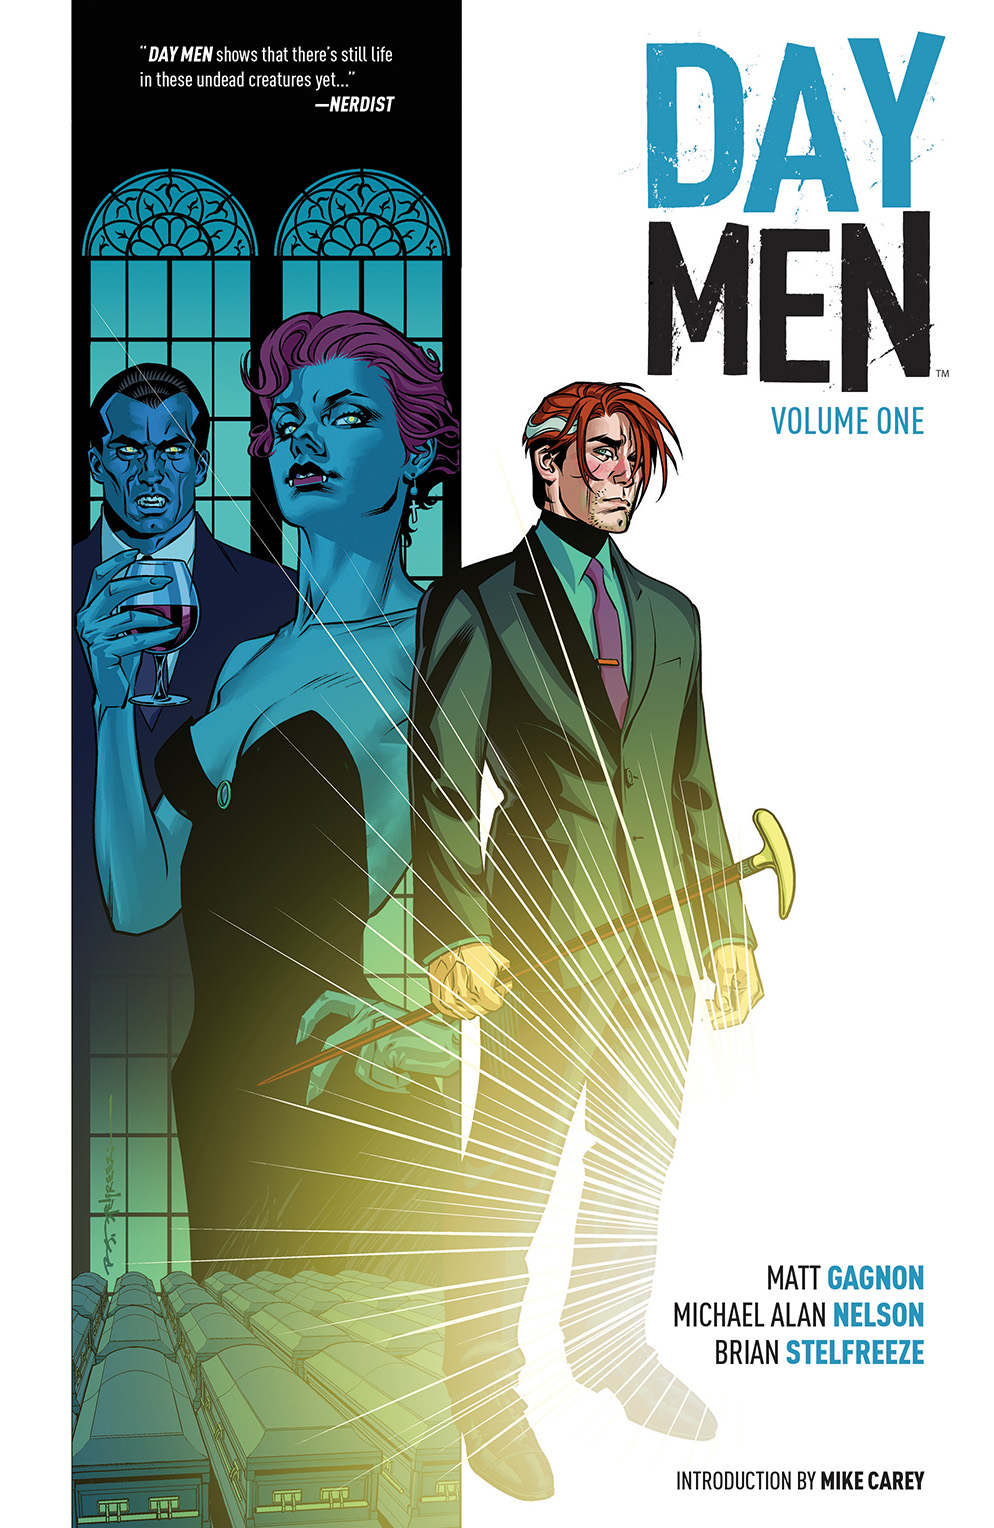 DAY MEN VOL. 1 TP Cover by Brian Stelfreeze